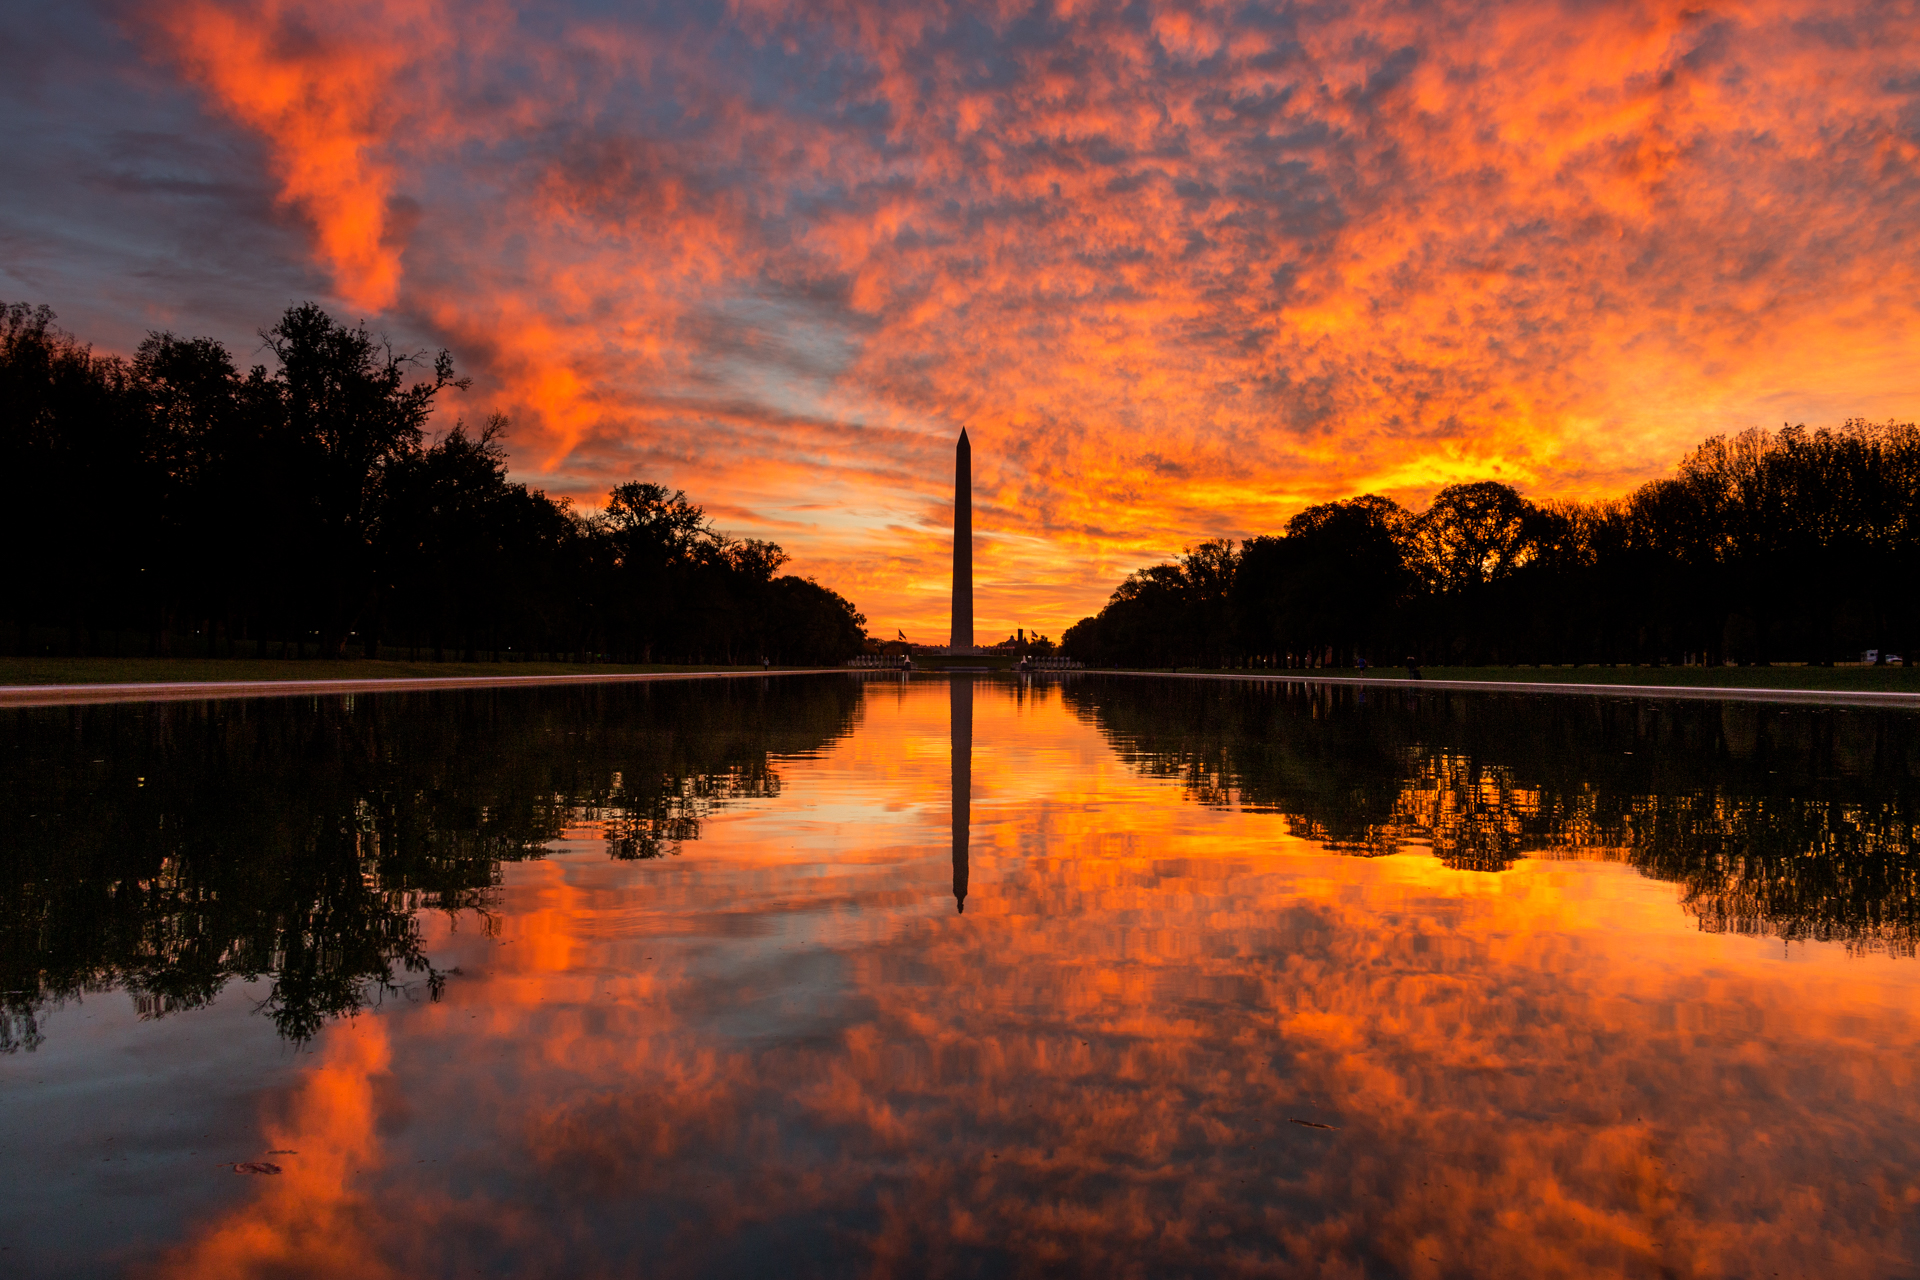 Flames of Dawn – A spectacular sunrise at the reflecting pool (Image: Zack Lewkowicz)<p></p>